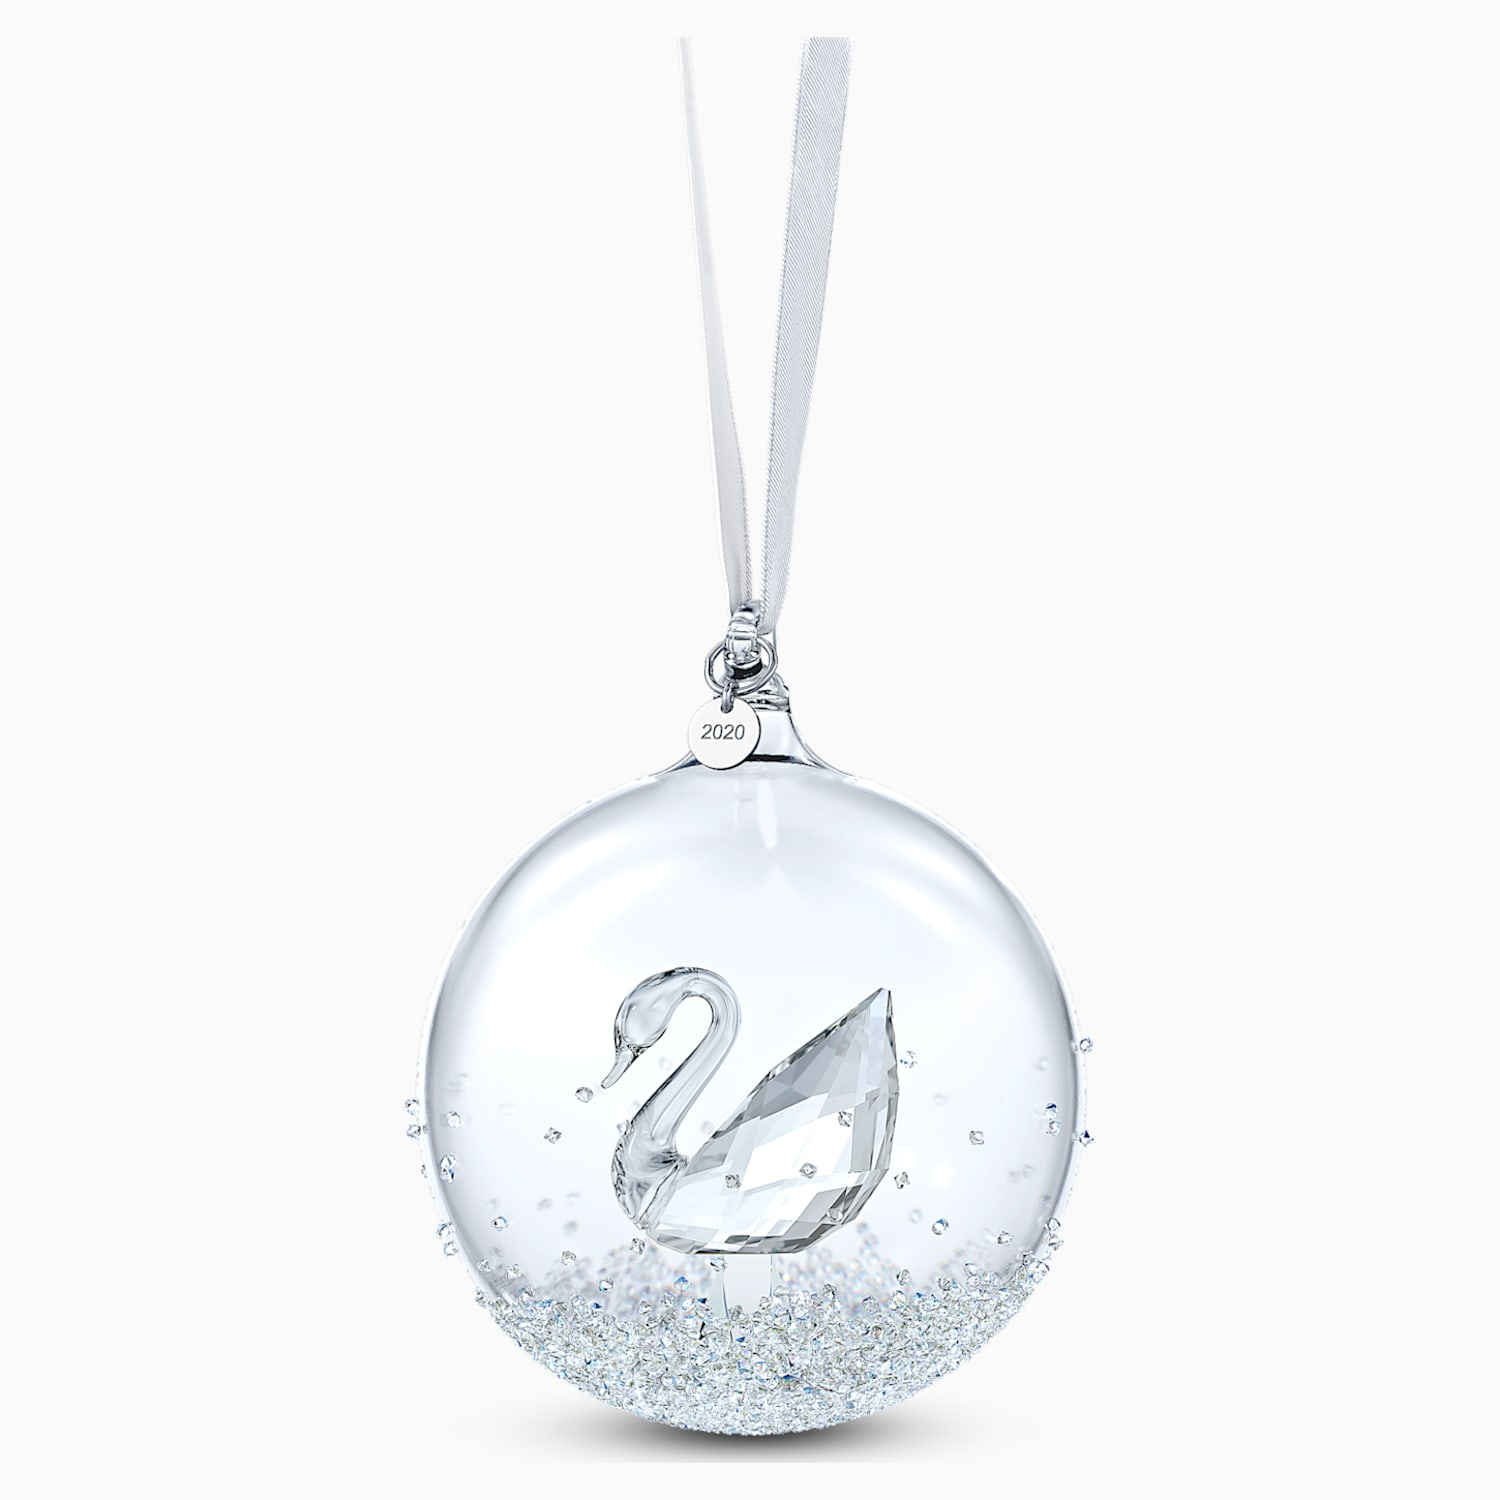 Annual Edition Ball Ornament 2020 | Swarovski.com